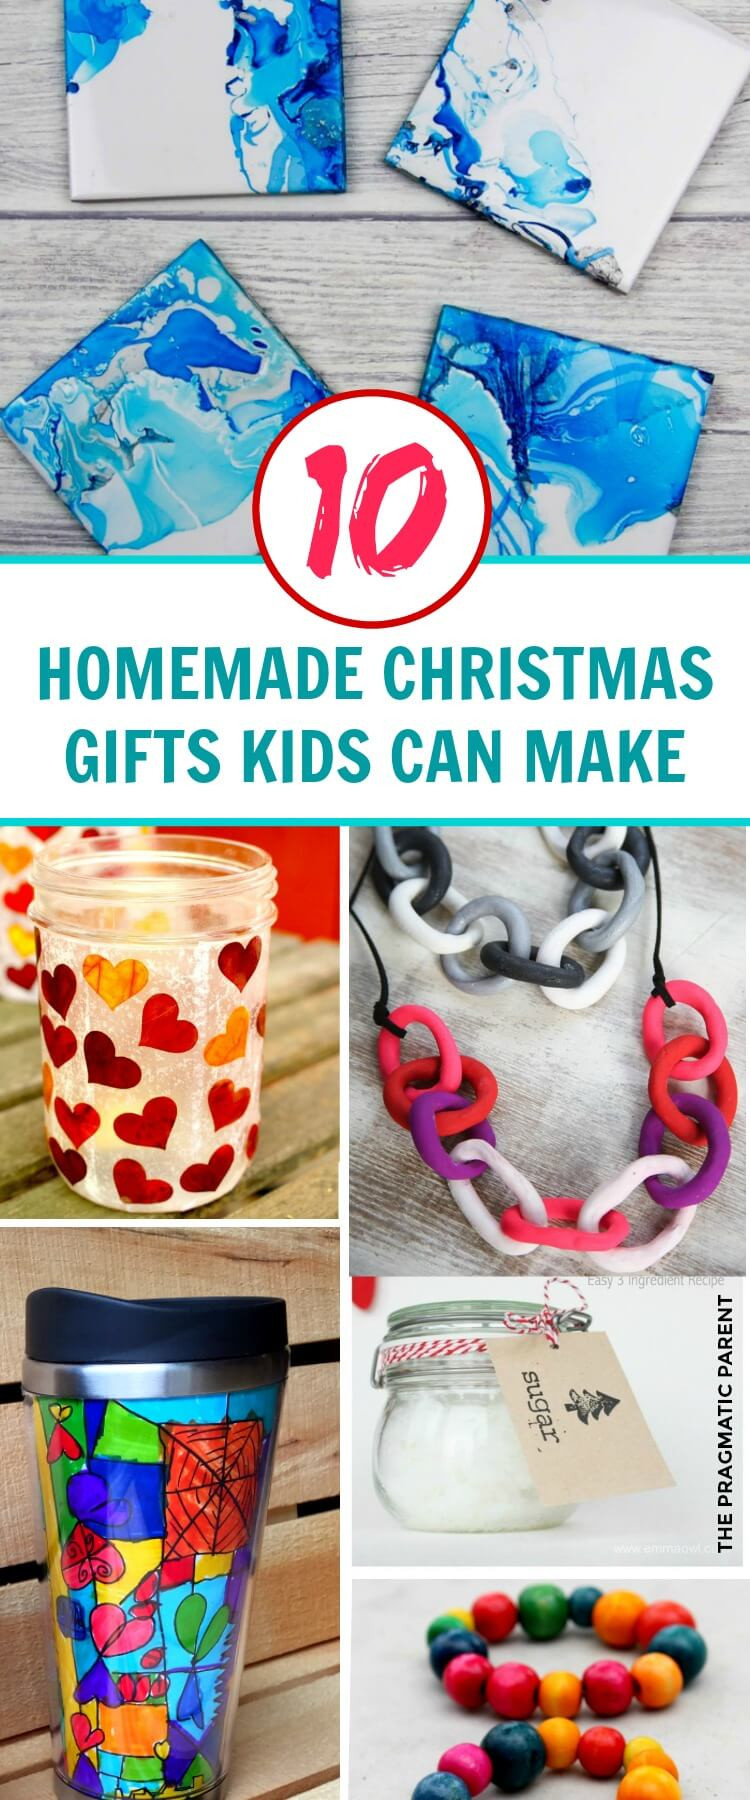 Handmade Gifts From Toddlers  10 Beautiful Homemade Christmas Gifts Kids Can Make This 2020